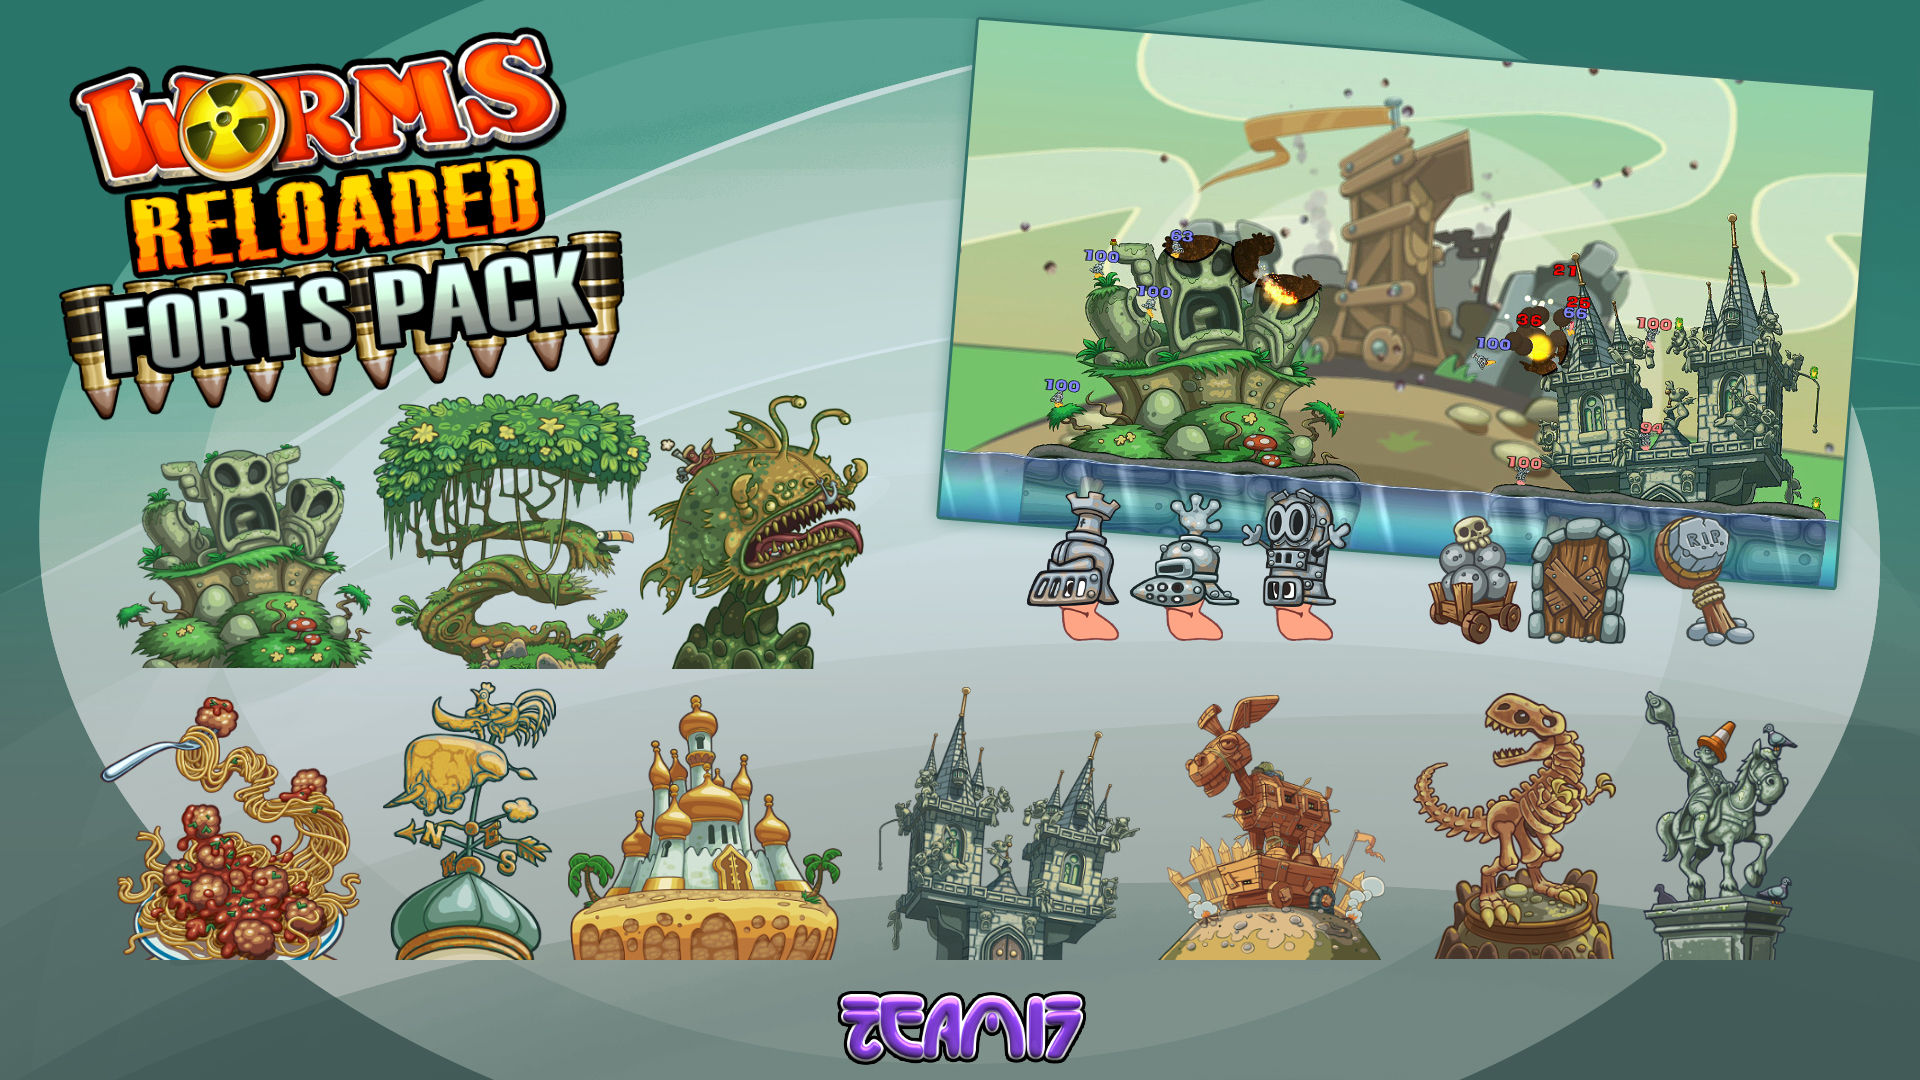 Amazon.com: Worms Reloaded - Forts Pack [Online Game Code ...